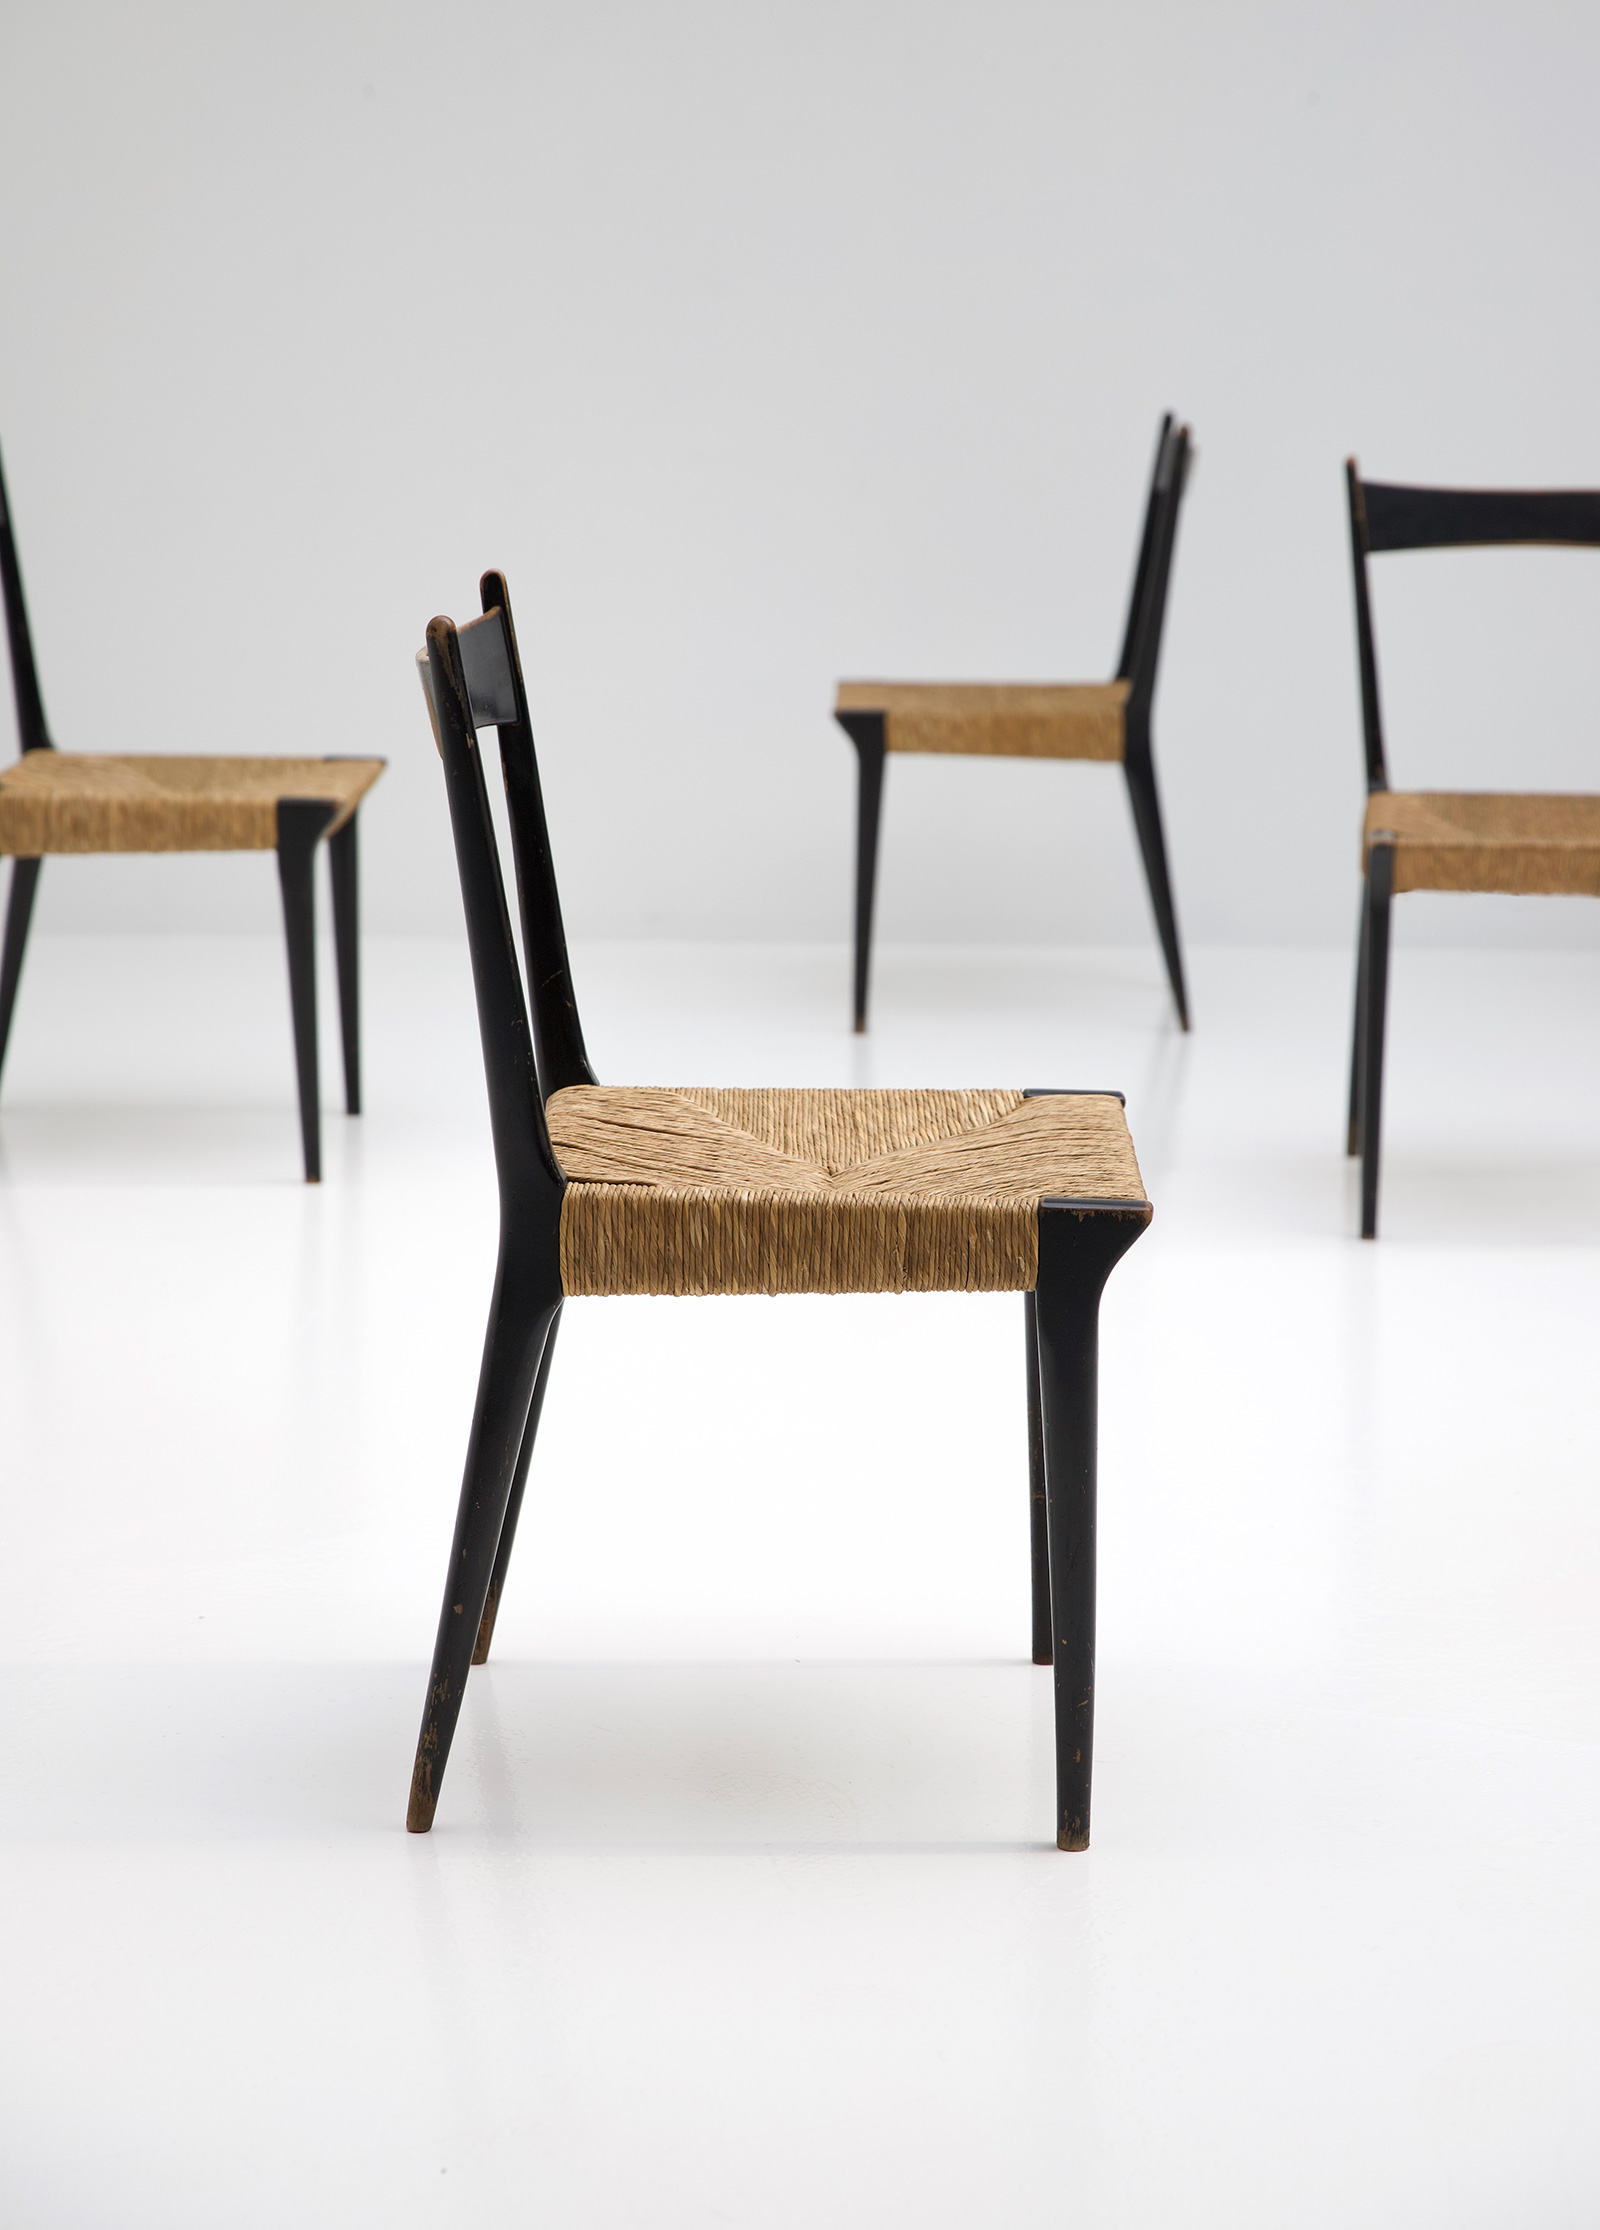 Alfred Hendrickx Woven Cane S2 Chairsimage 4